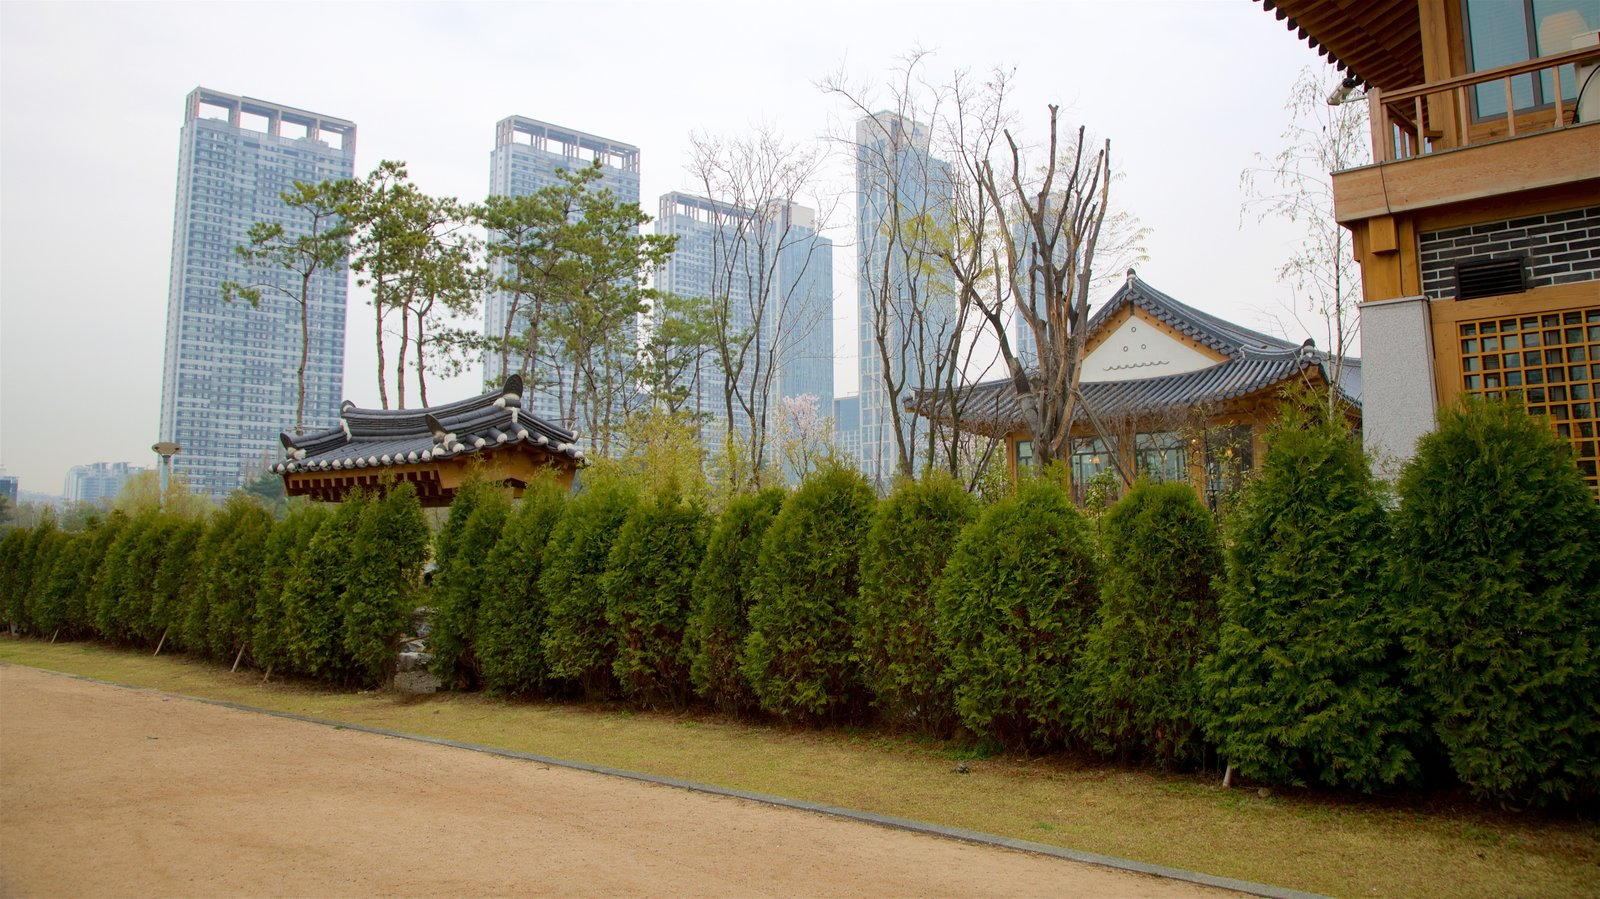 Incheon which includes a high rise building, a city and heritage elements